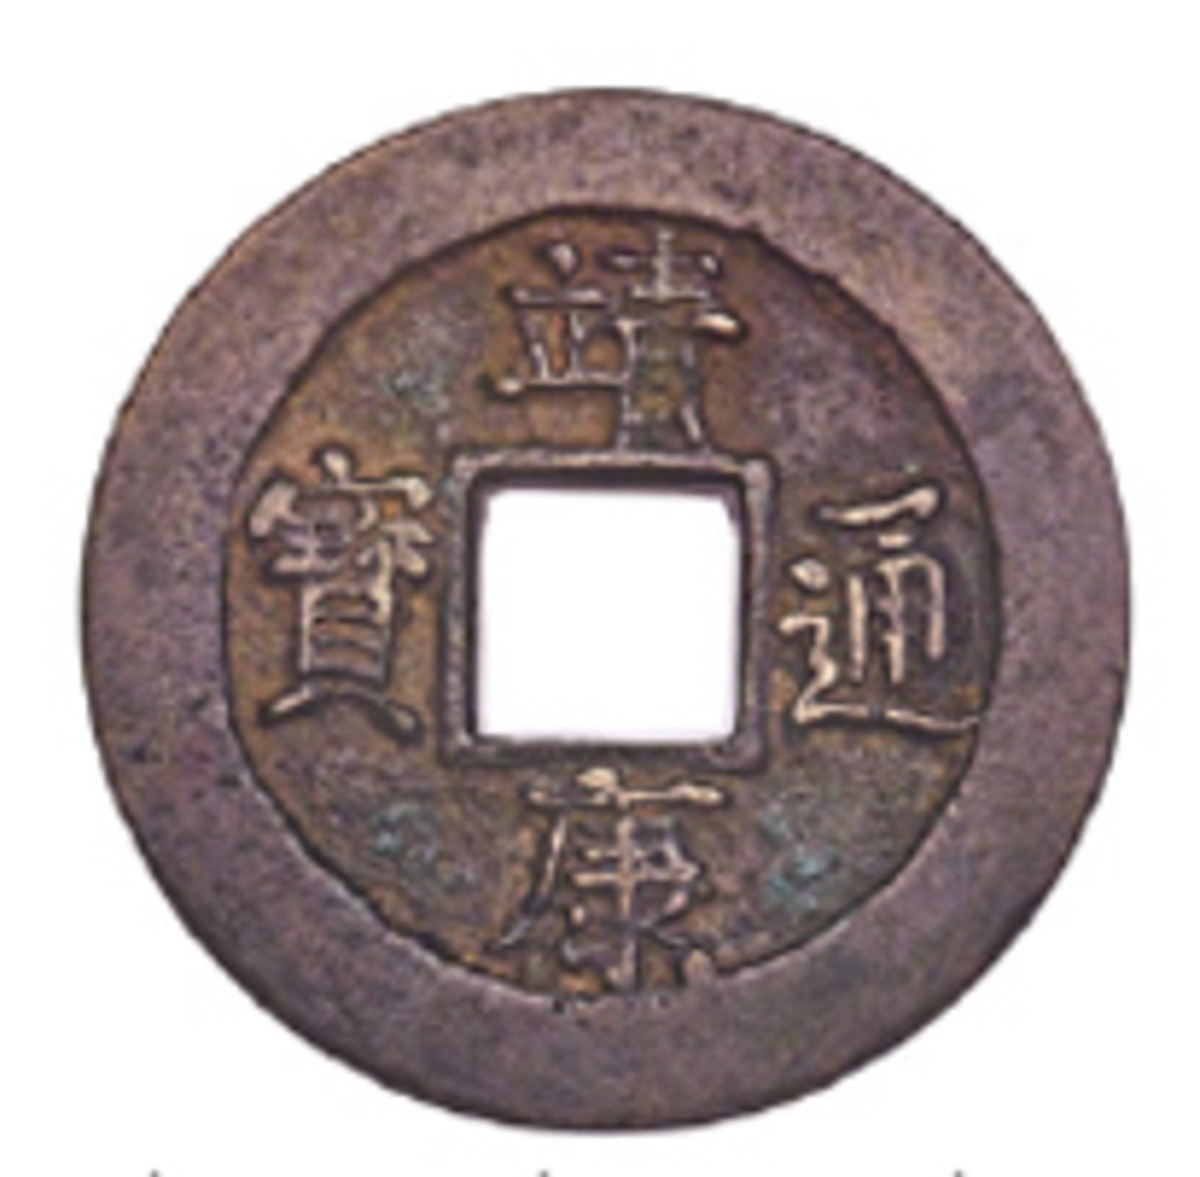 """Obverse of Northern Song Dynasty """"Jing Kang Tong Bao"""" 2 cash of Emperor Qin Zong that fetched $13,200 on a $5,000-$7,000 estimate. (Image courtesy and © www.ha.com)"""